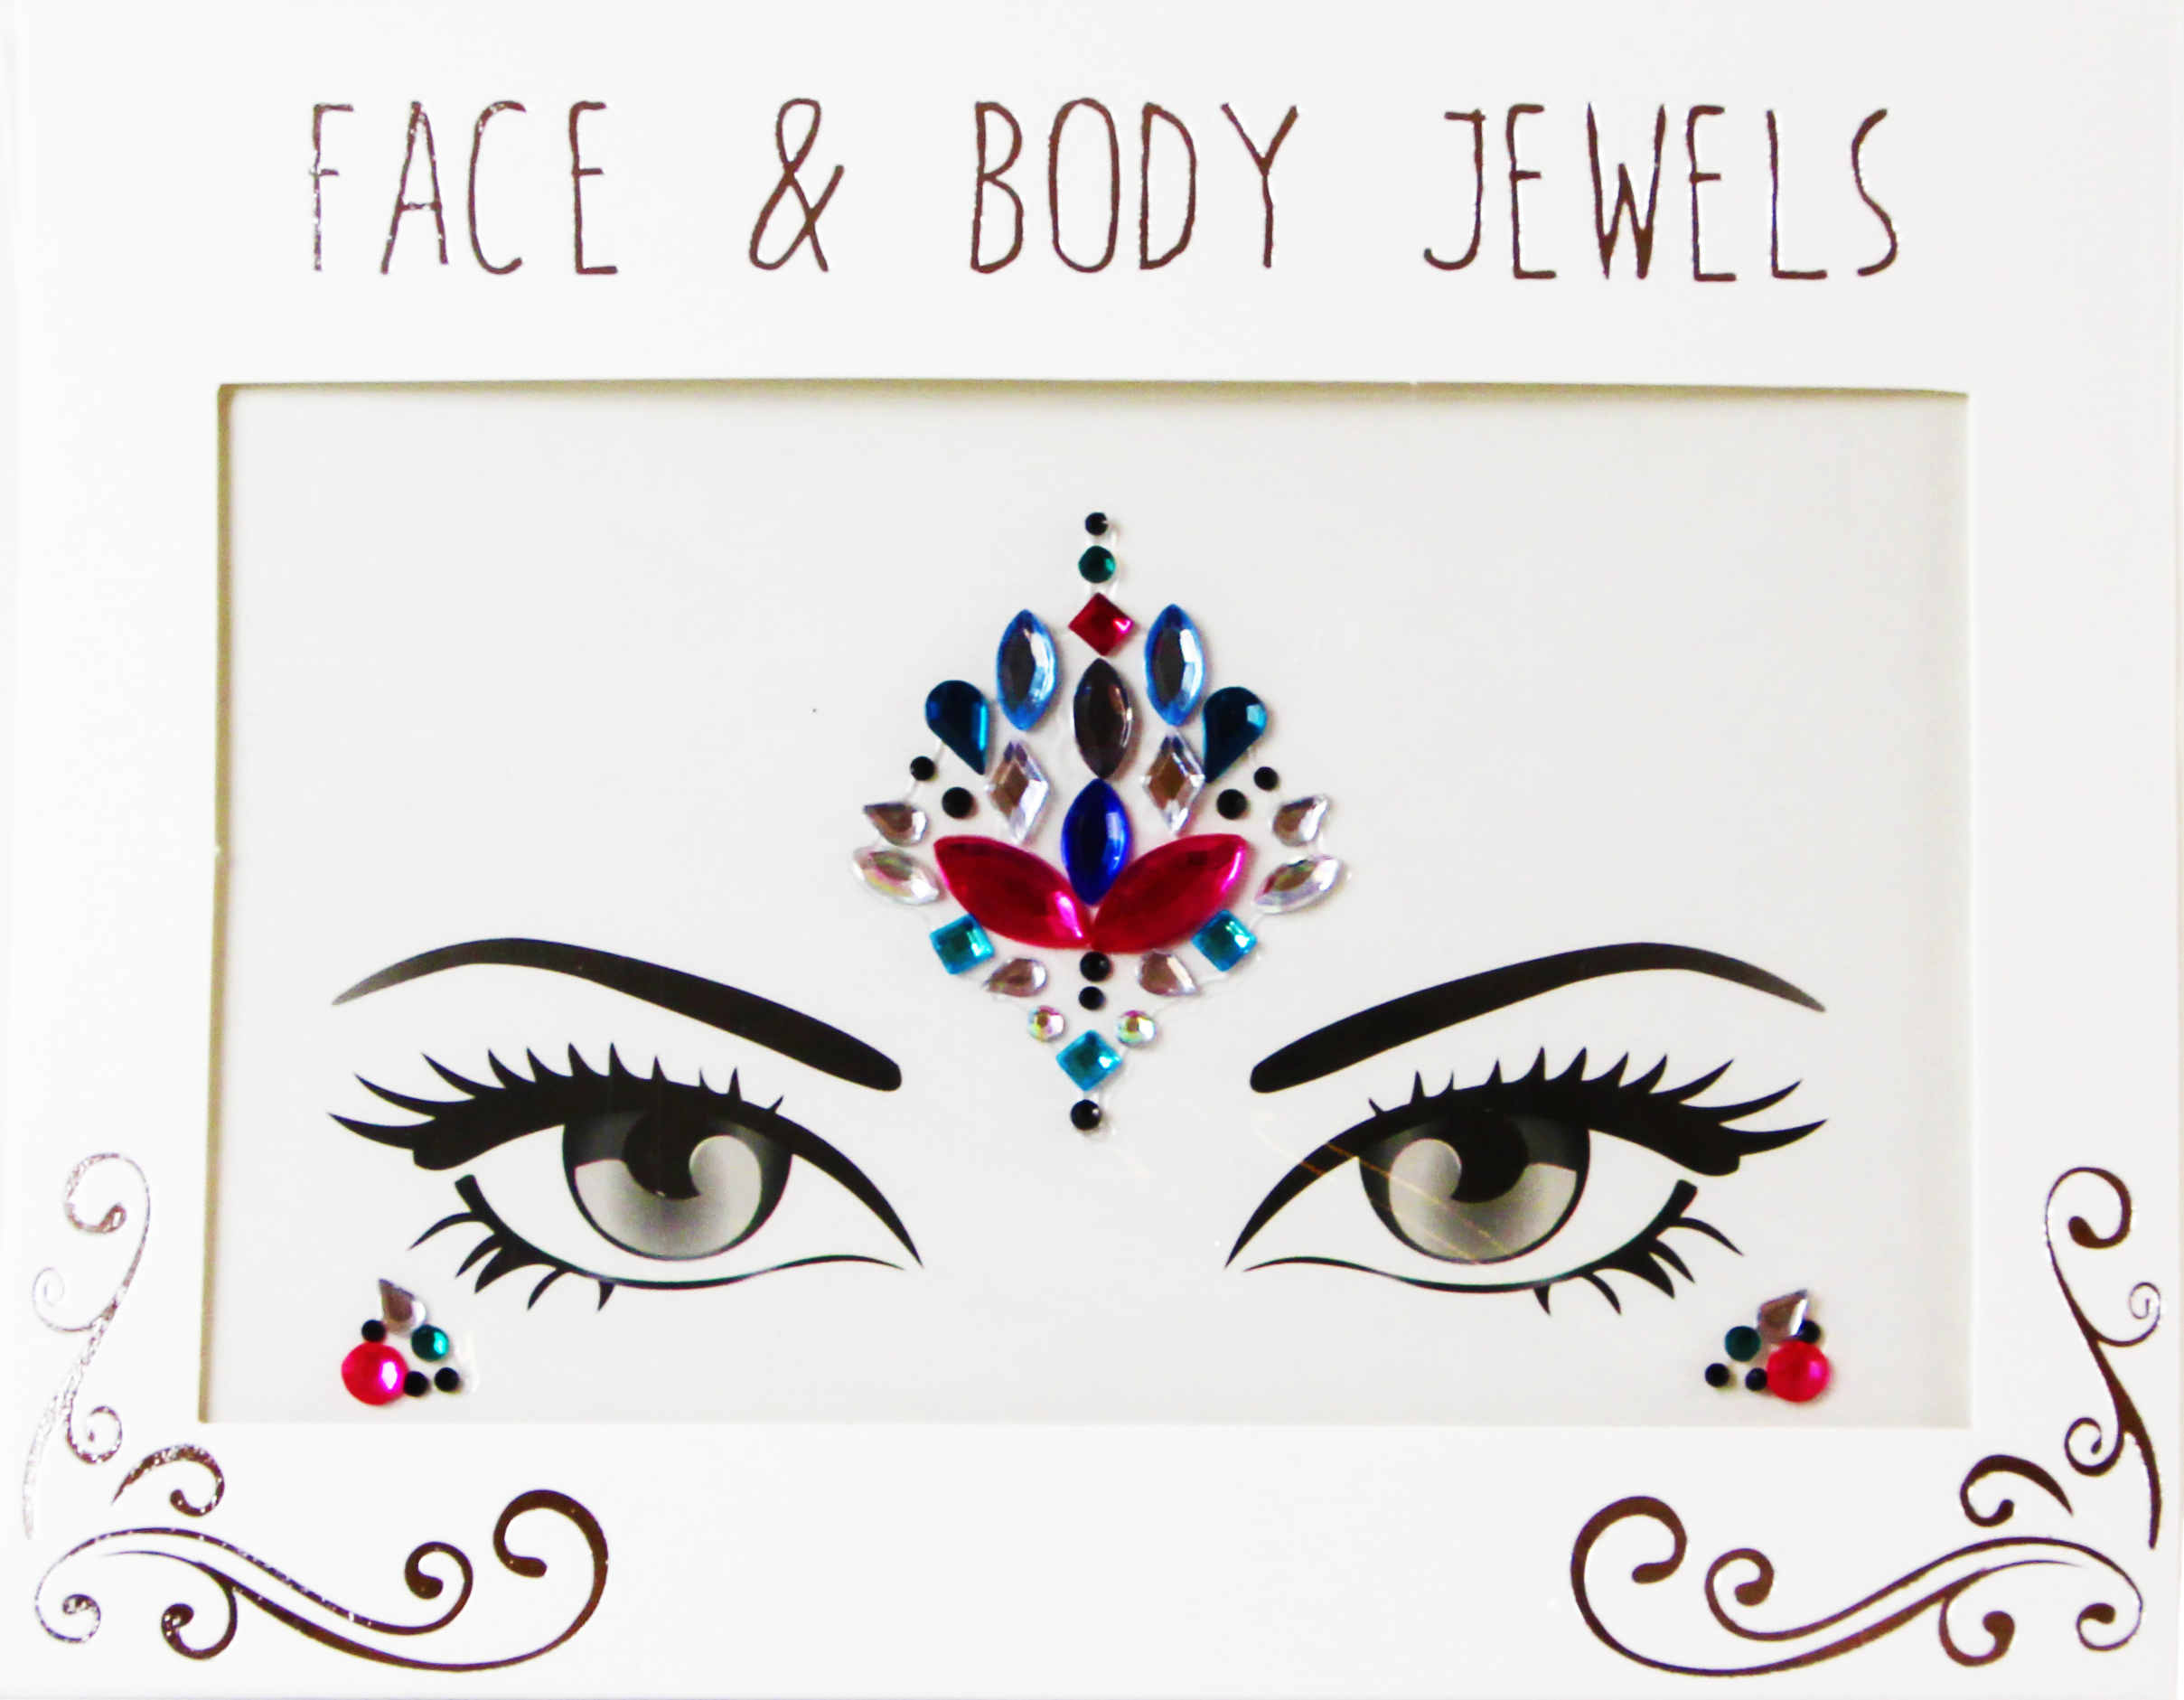 Face & Bodygems Gypsy Child